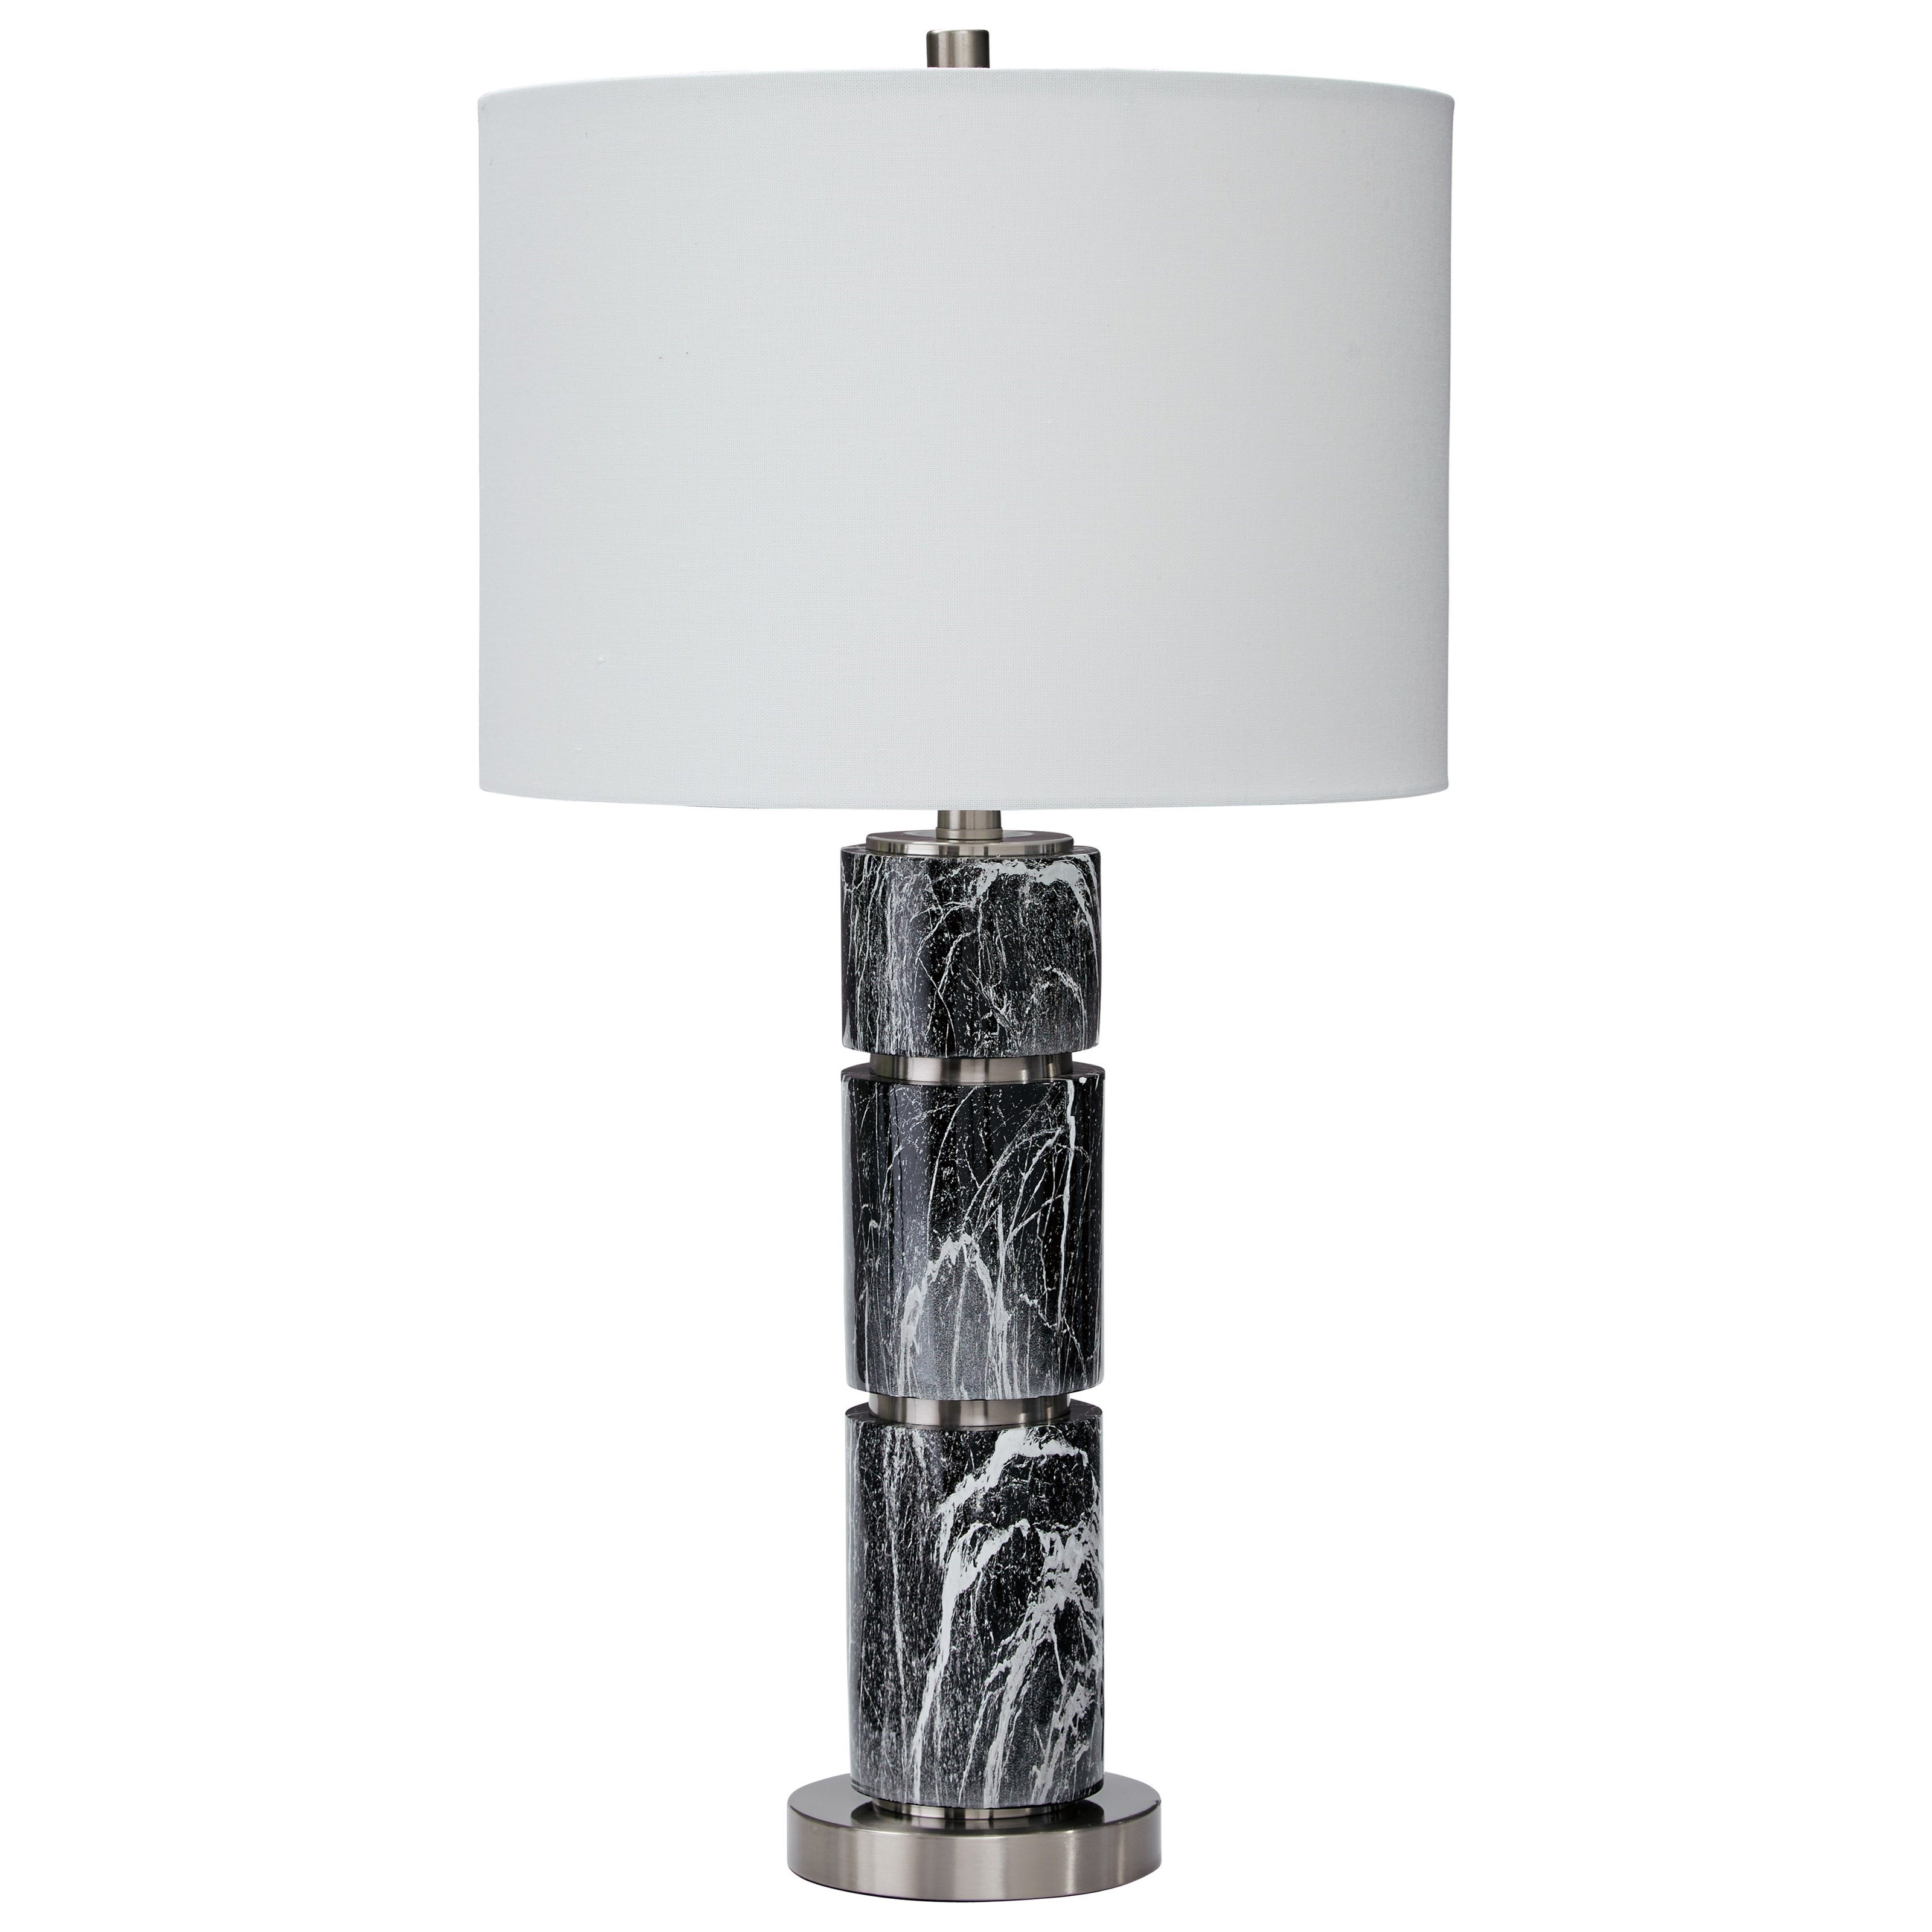 Signature Design by Ashley Lamps - Contemporary Set of 2 Maricela Black/White Table Lamps - Item Number: L243204